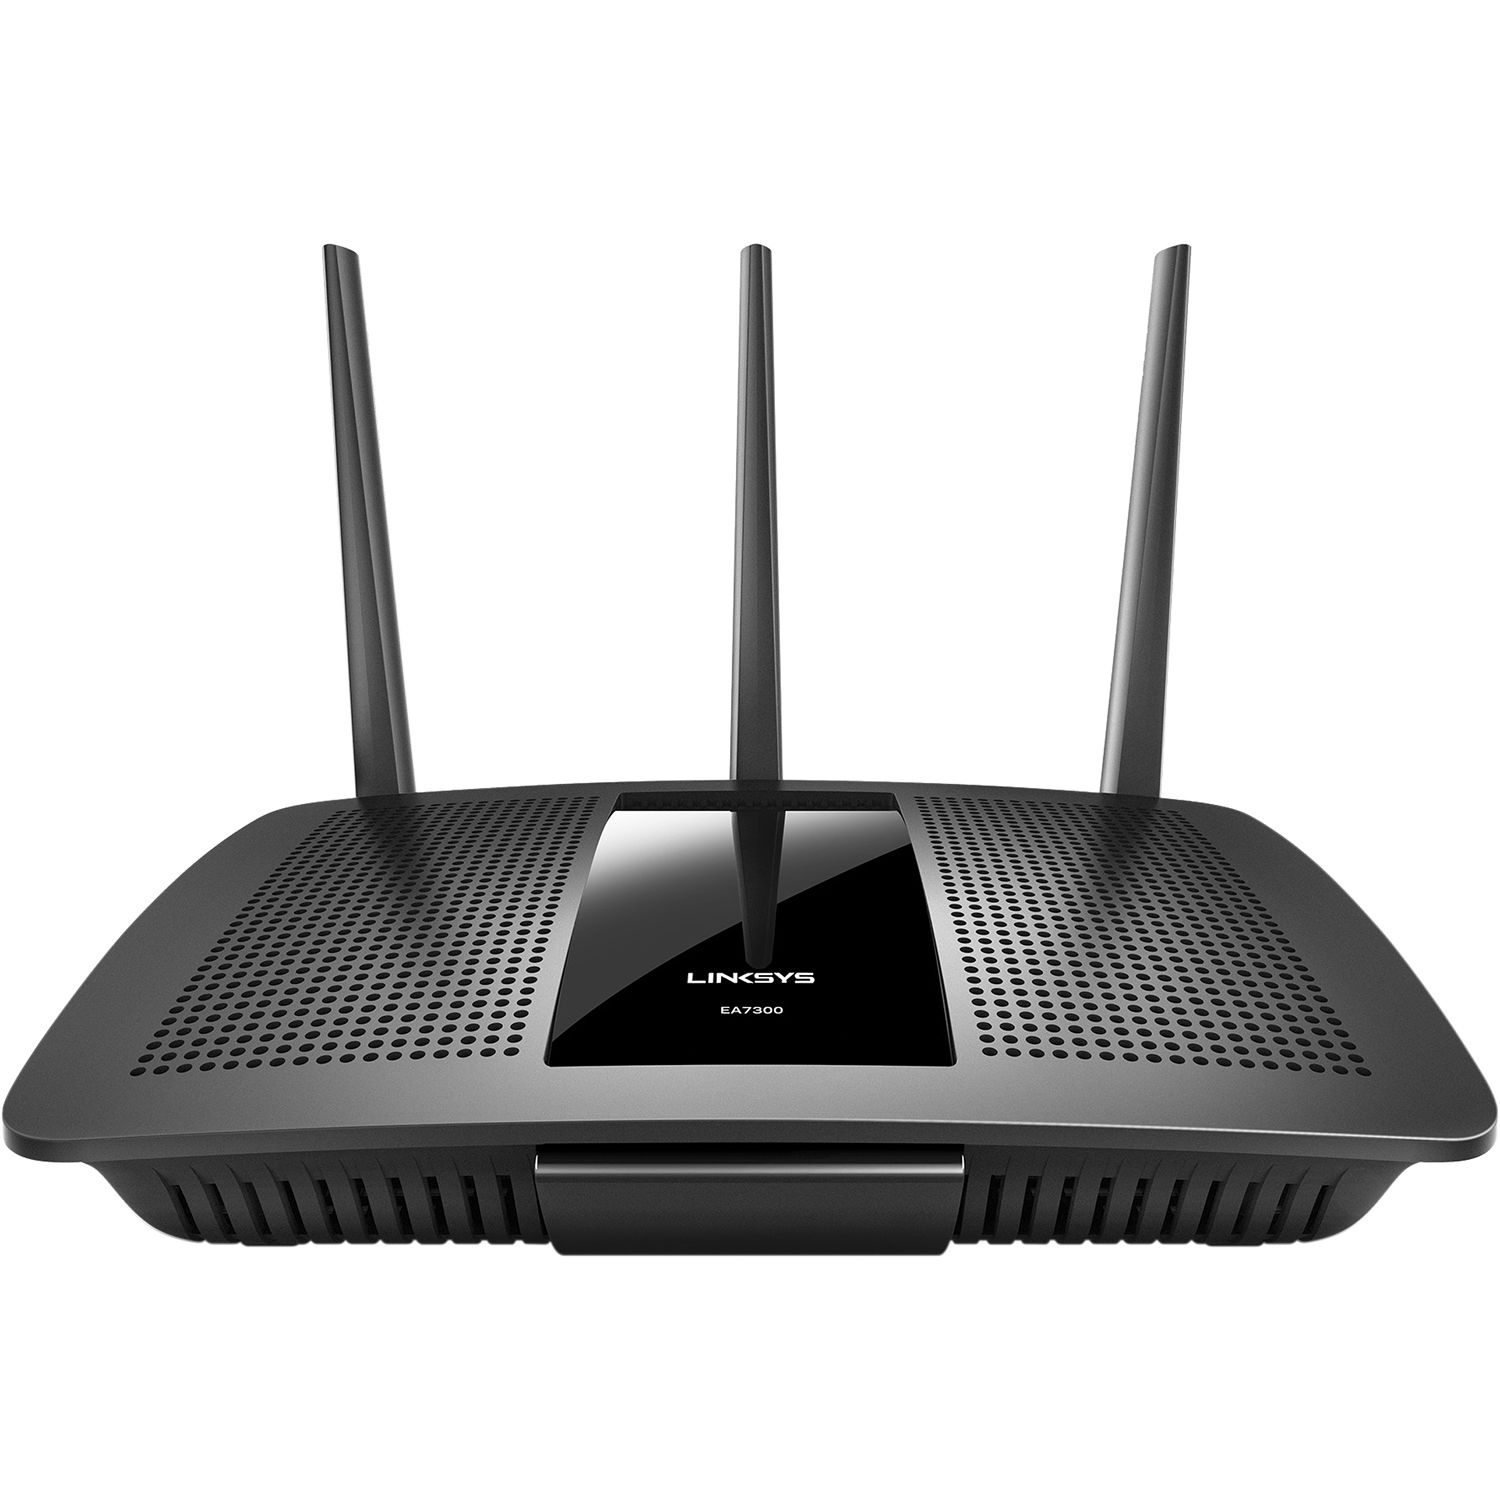 EA7300 Max-Stream Dual-Band Wireless-AC1750 MU-MIMO Gigabit Router